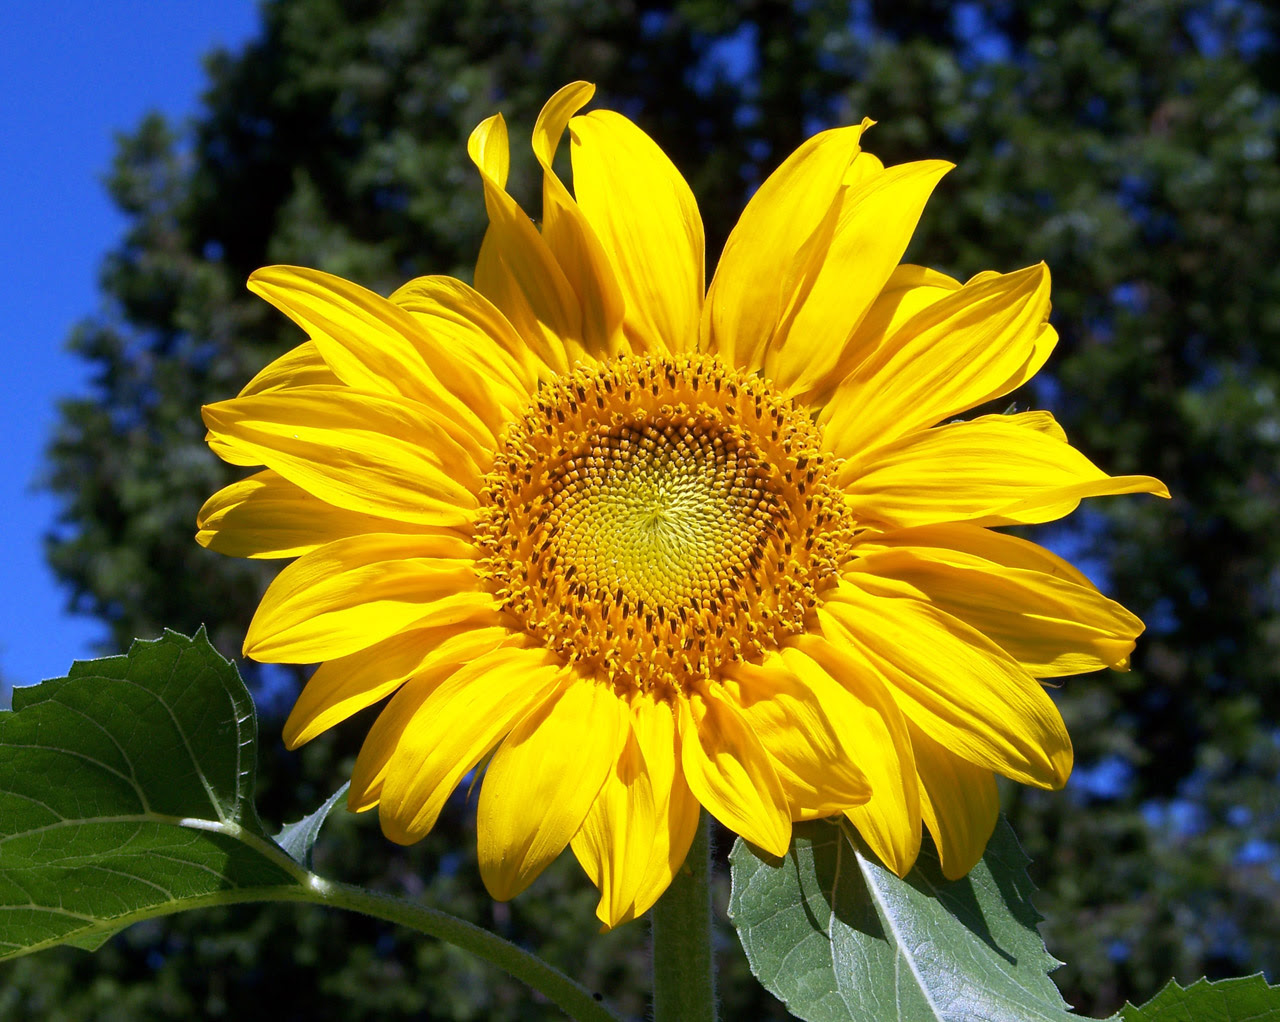 Sunflower Free Stock Photo - Public Domain Pictures